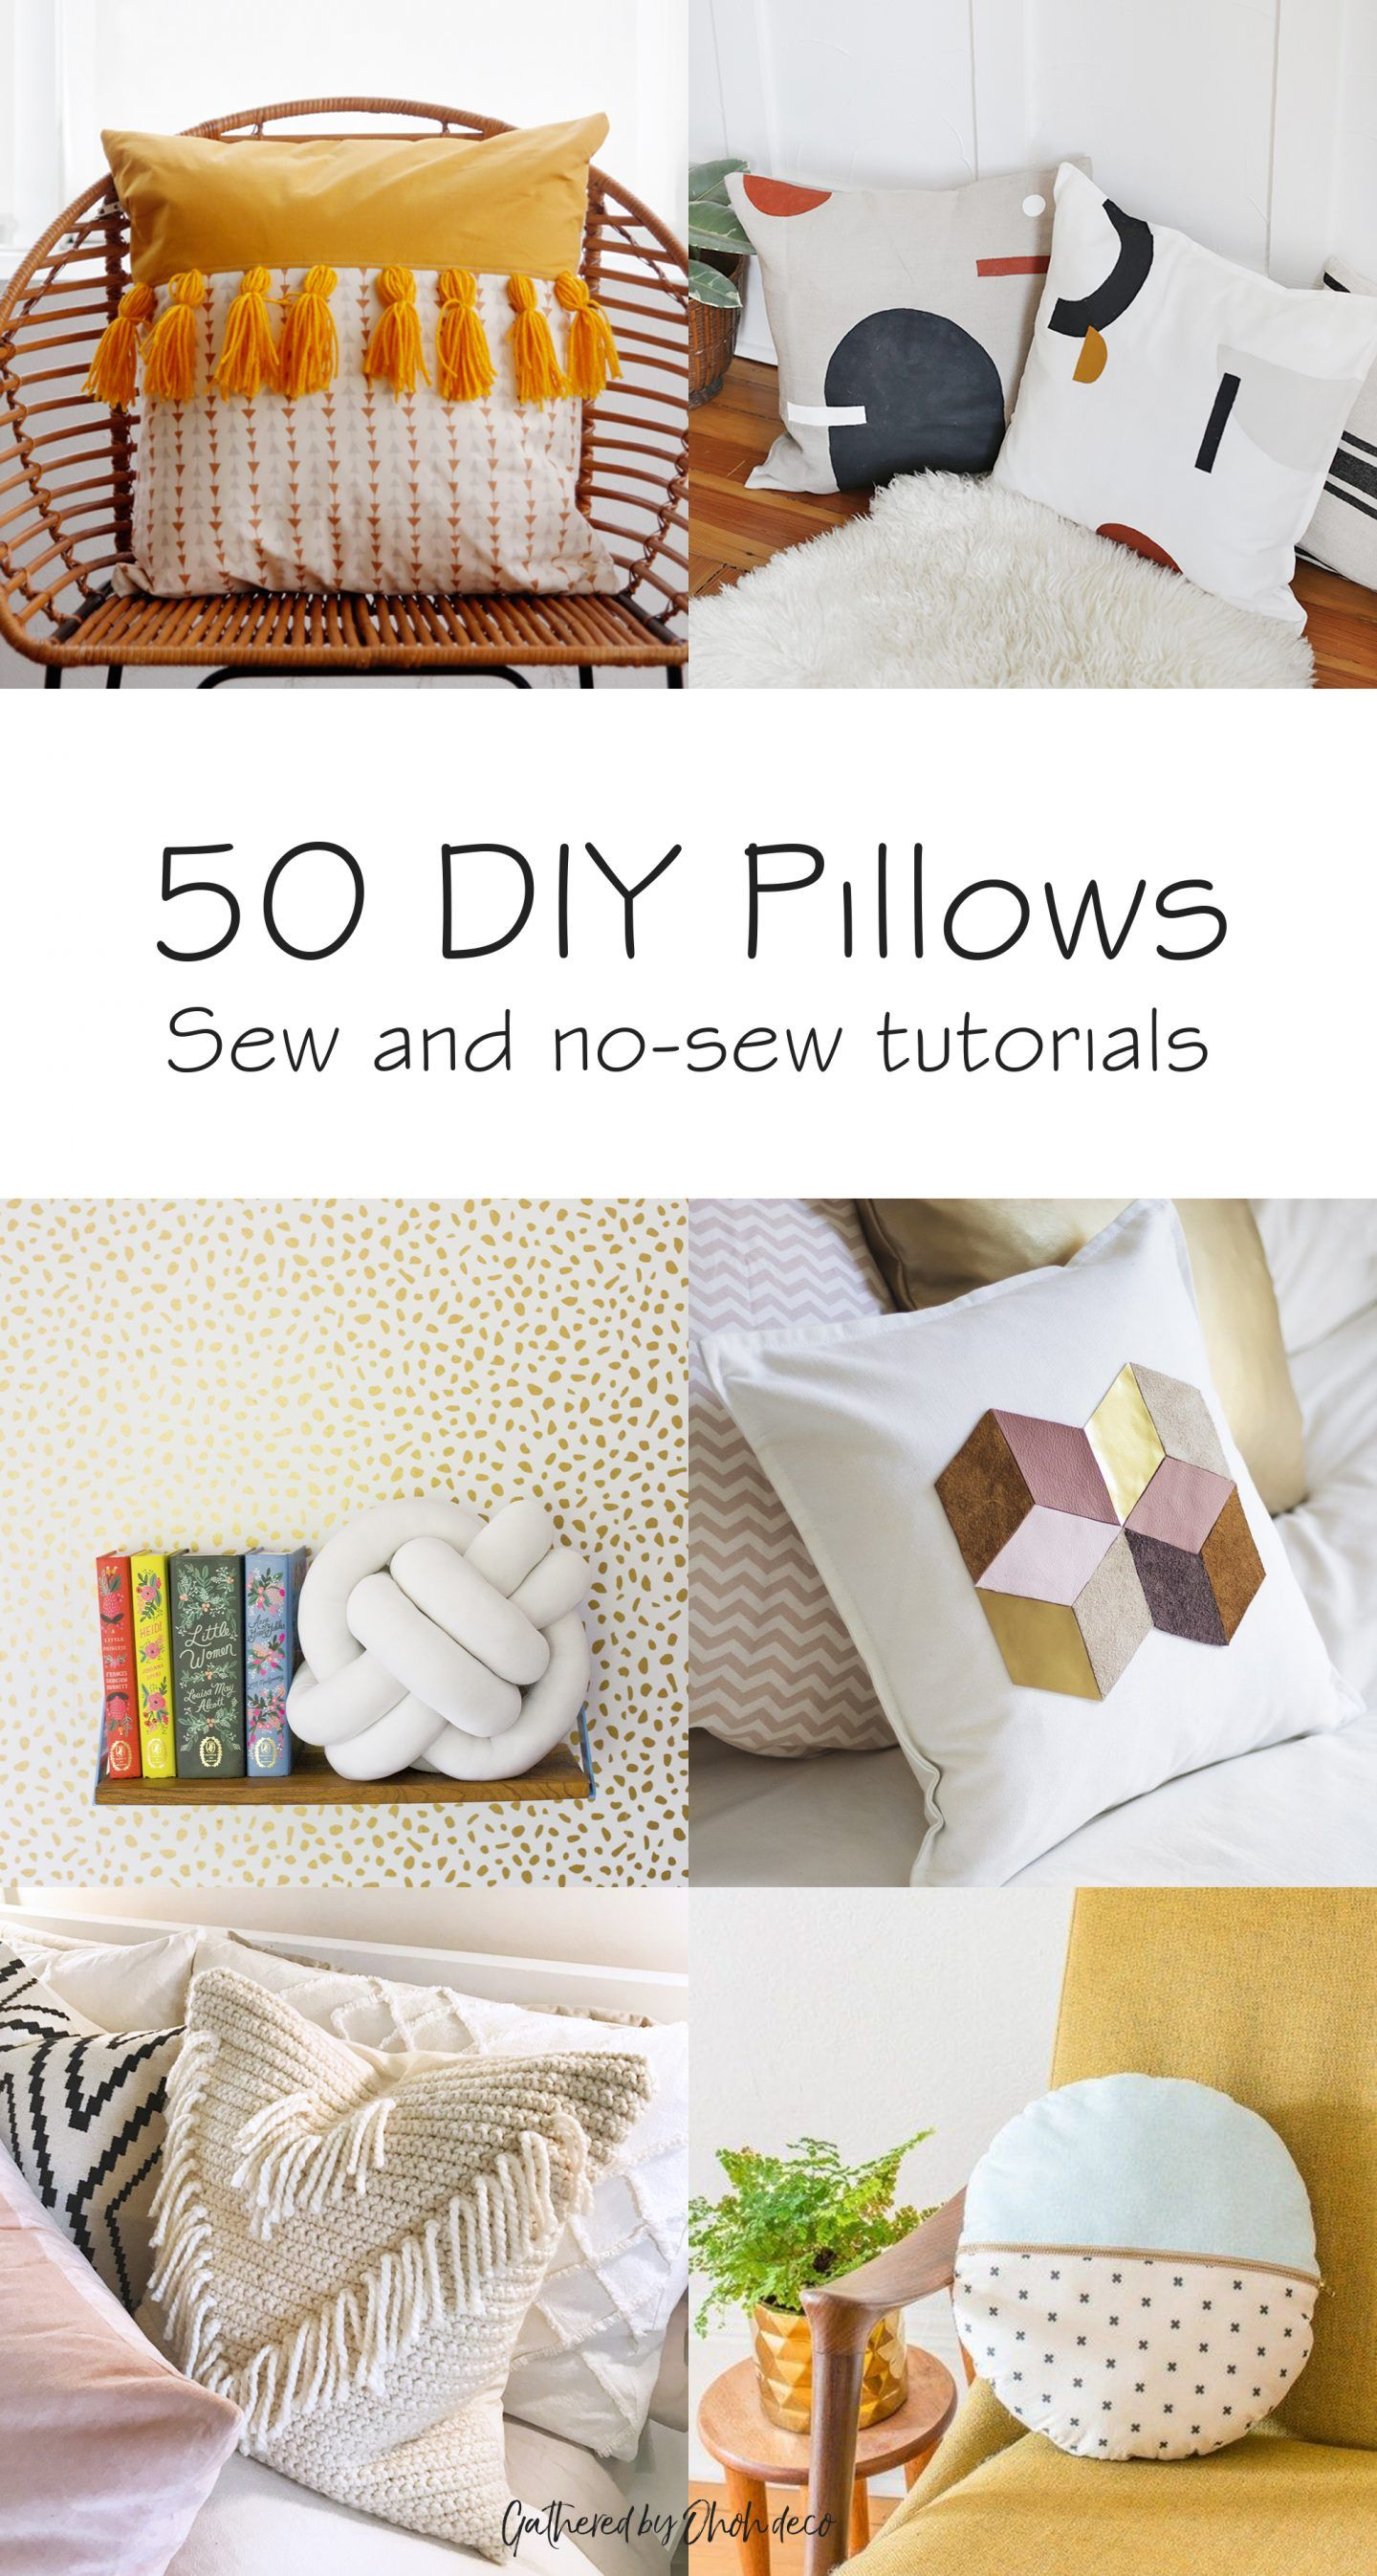 List of Easy DIY Pillows from ohohdeco.com